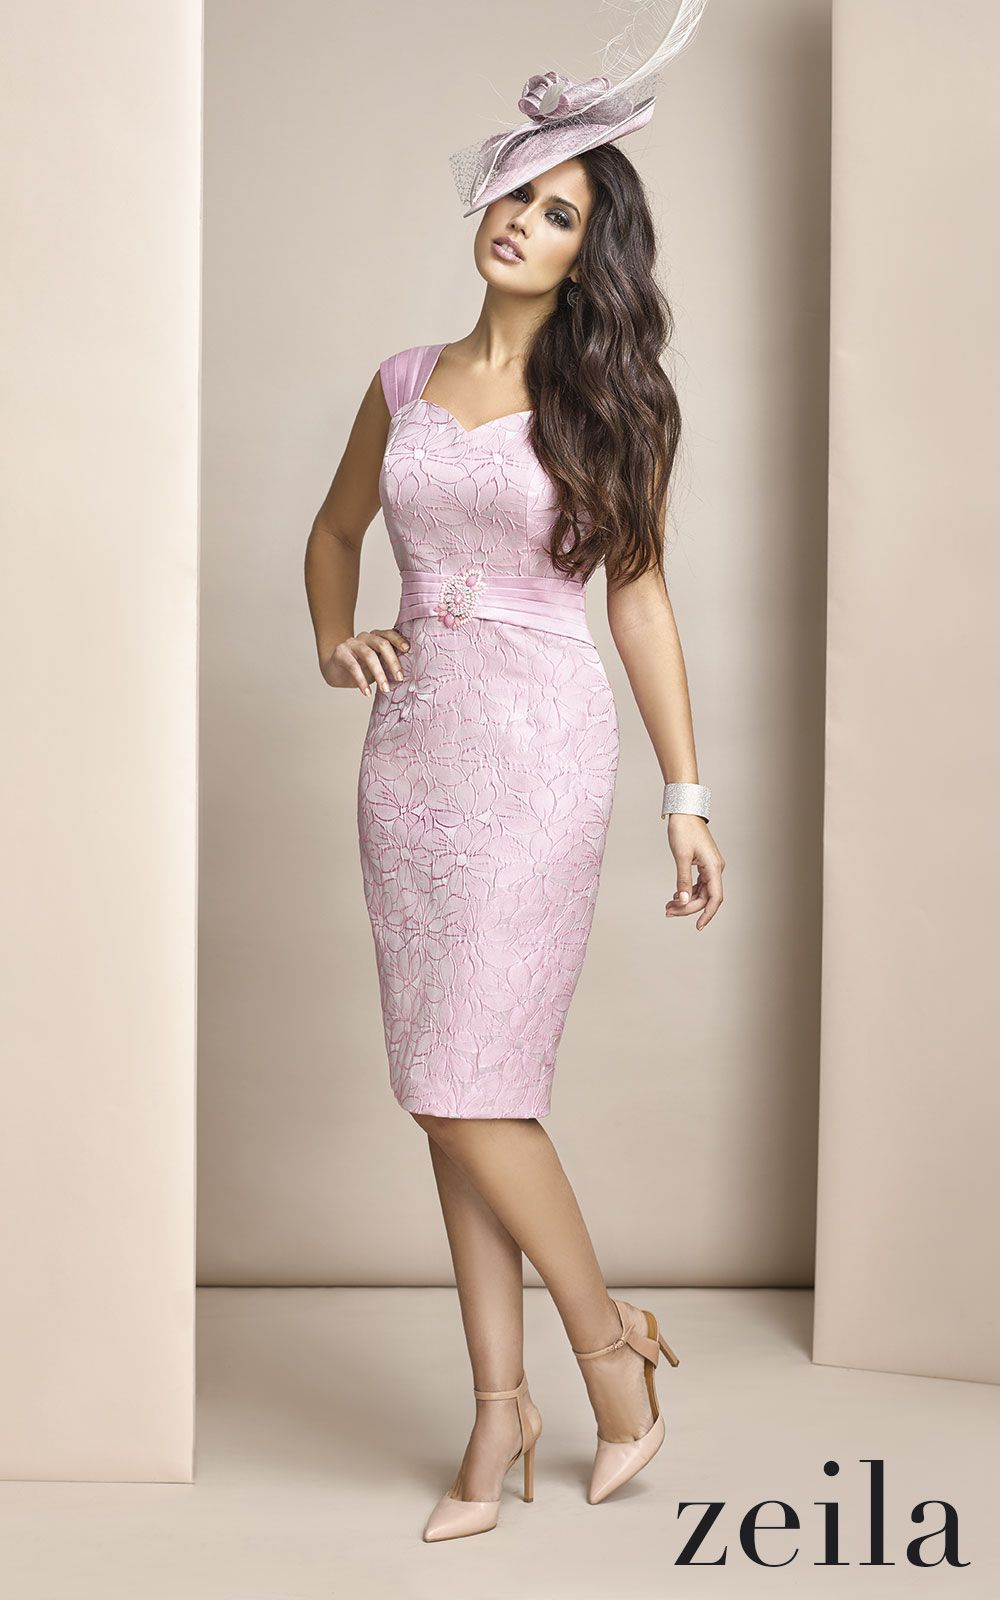 A Fabulous Pale Pink Dress With Laced Detail By Zeila Perfect For Mother